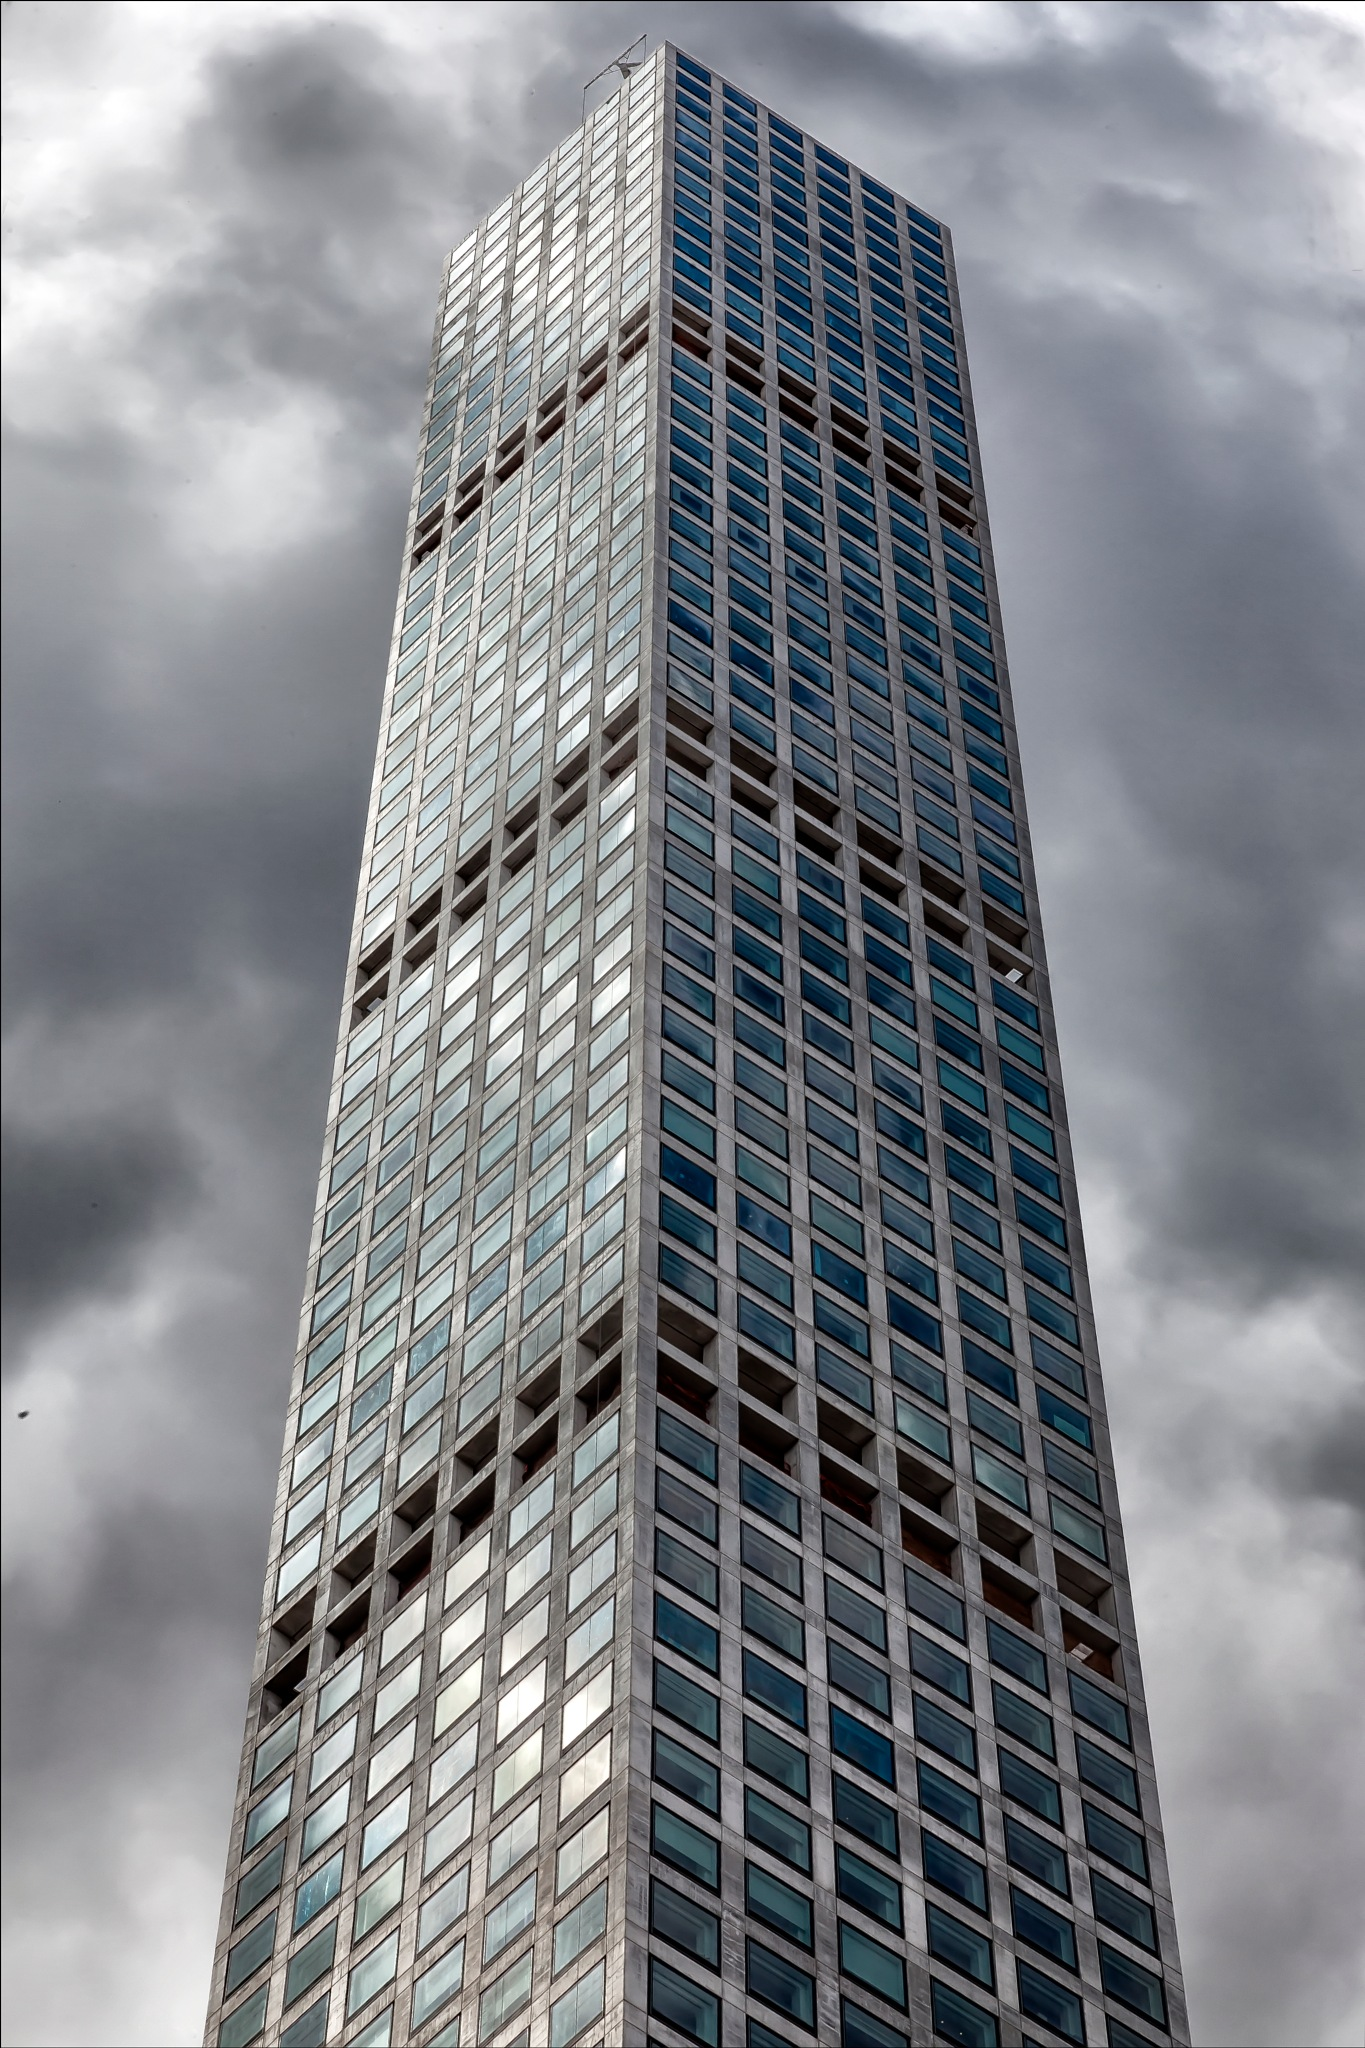 High Rise and Clouds NYC by robertullmann